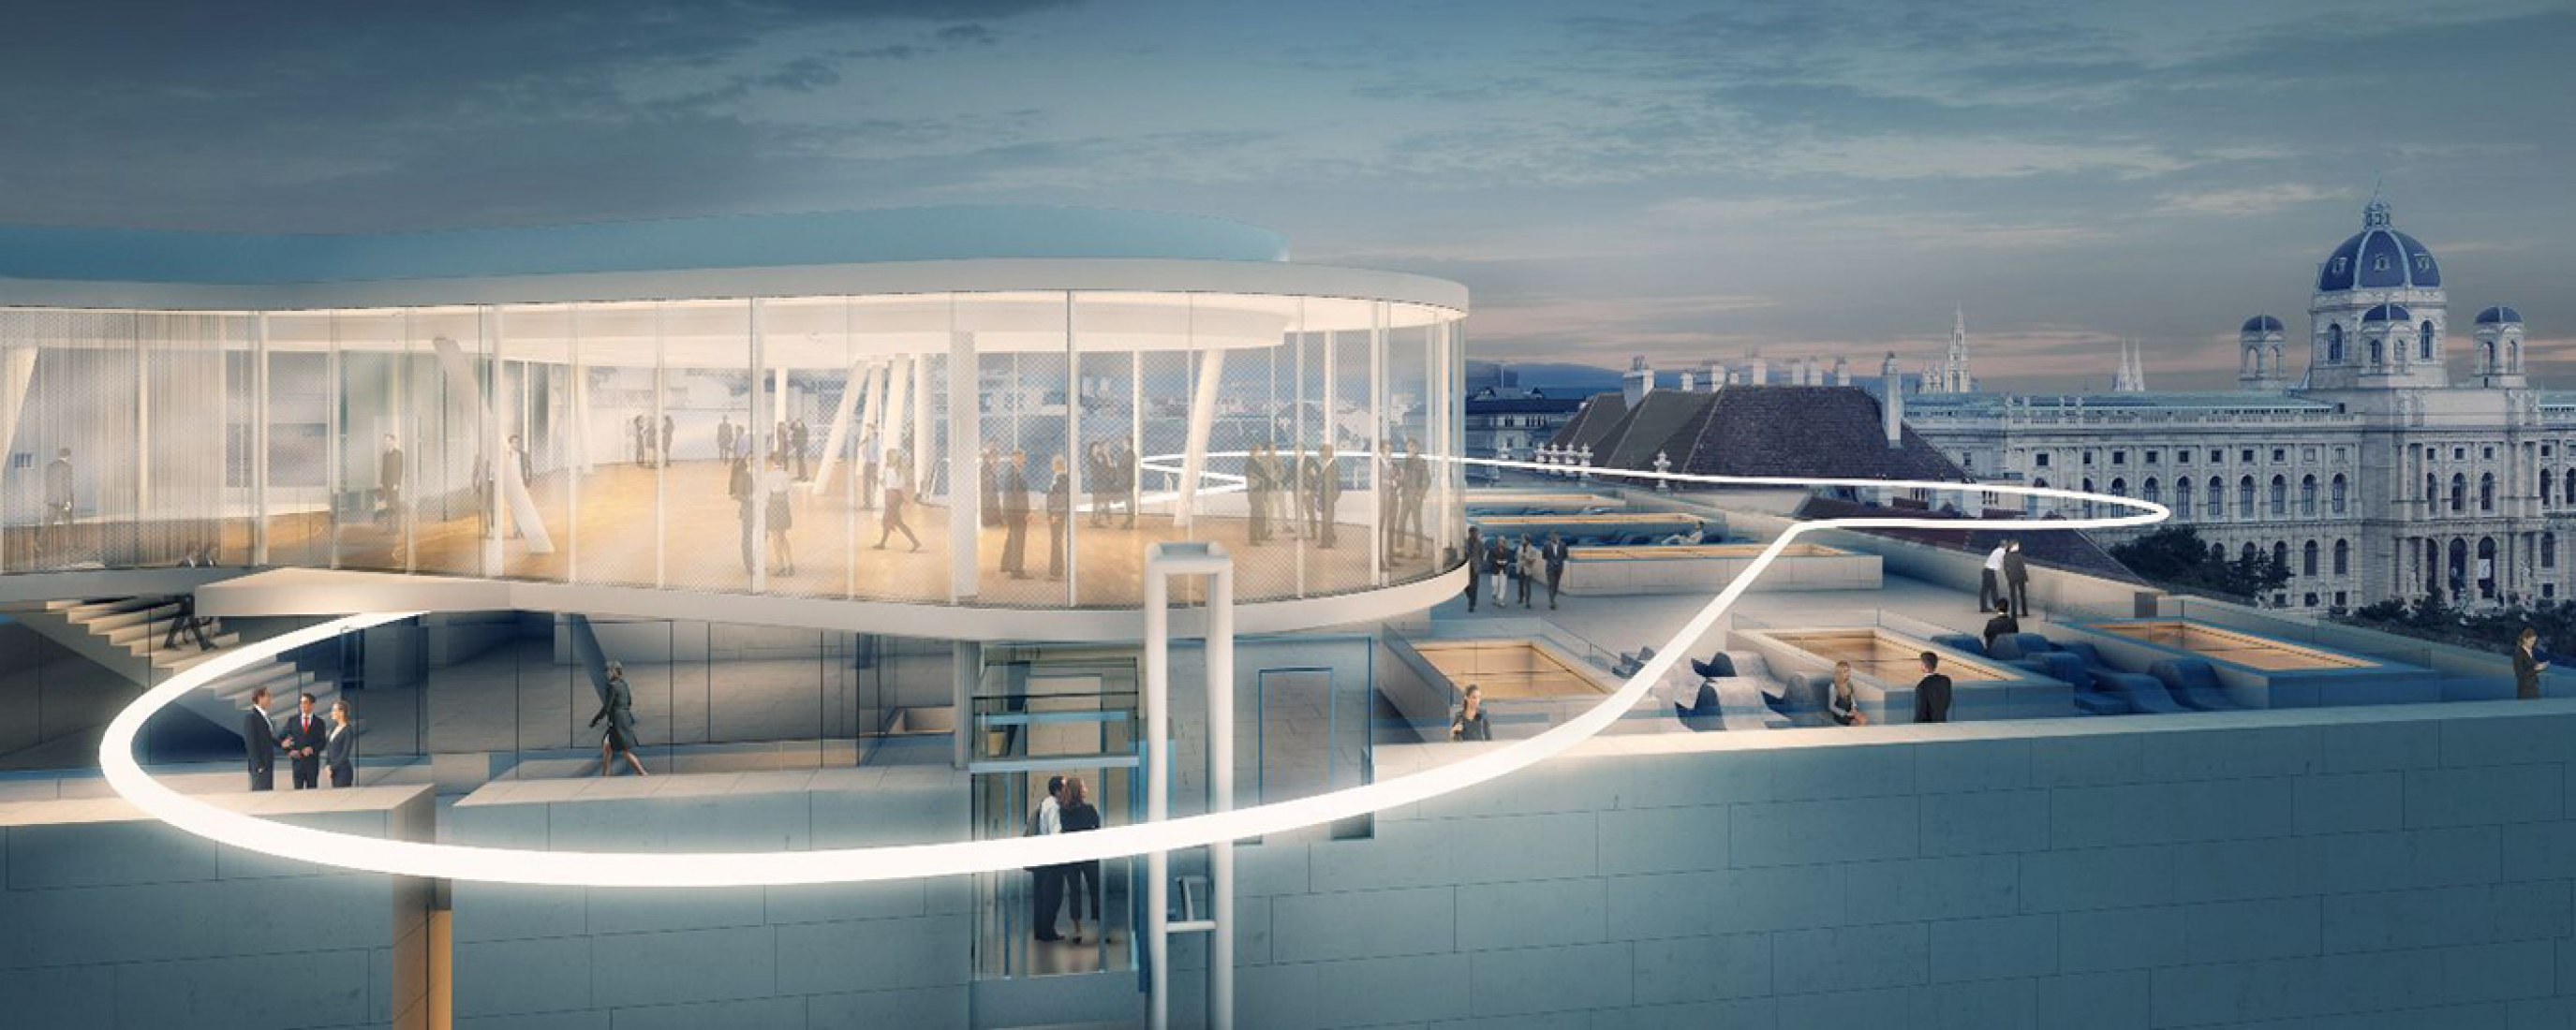 Rendering of pavilion and rooftop from outside, 2014. Libelle MQ, by O&O Baukunst.